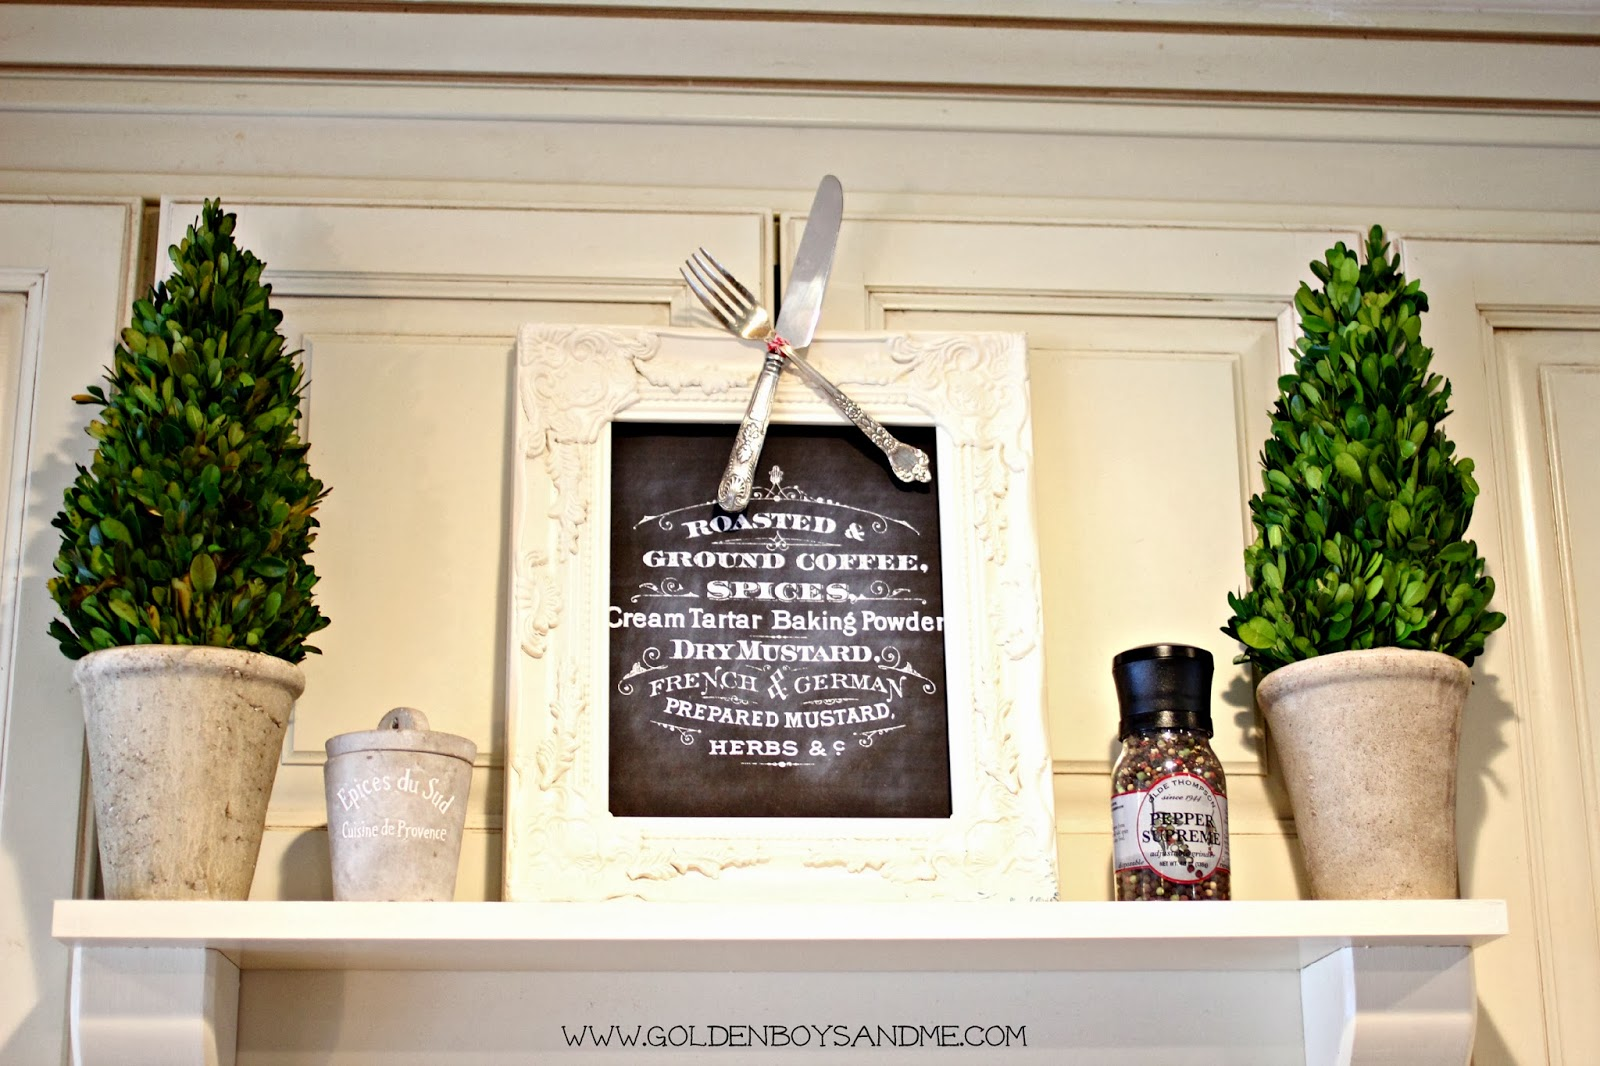 diy mantel shelf with preserved boxwood topiaries | www.goldenboysandme.com